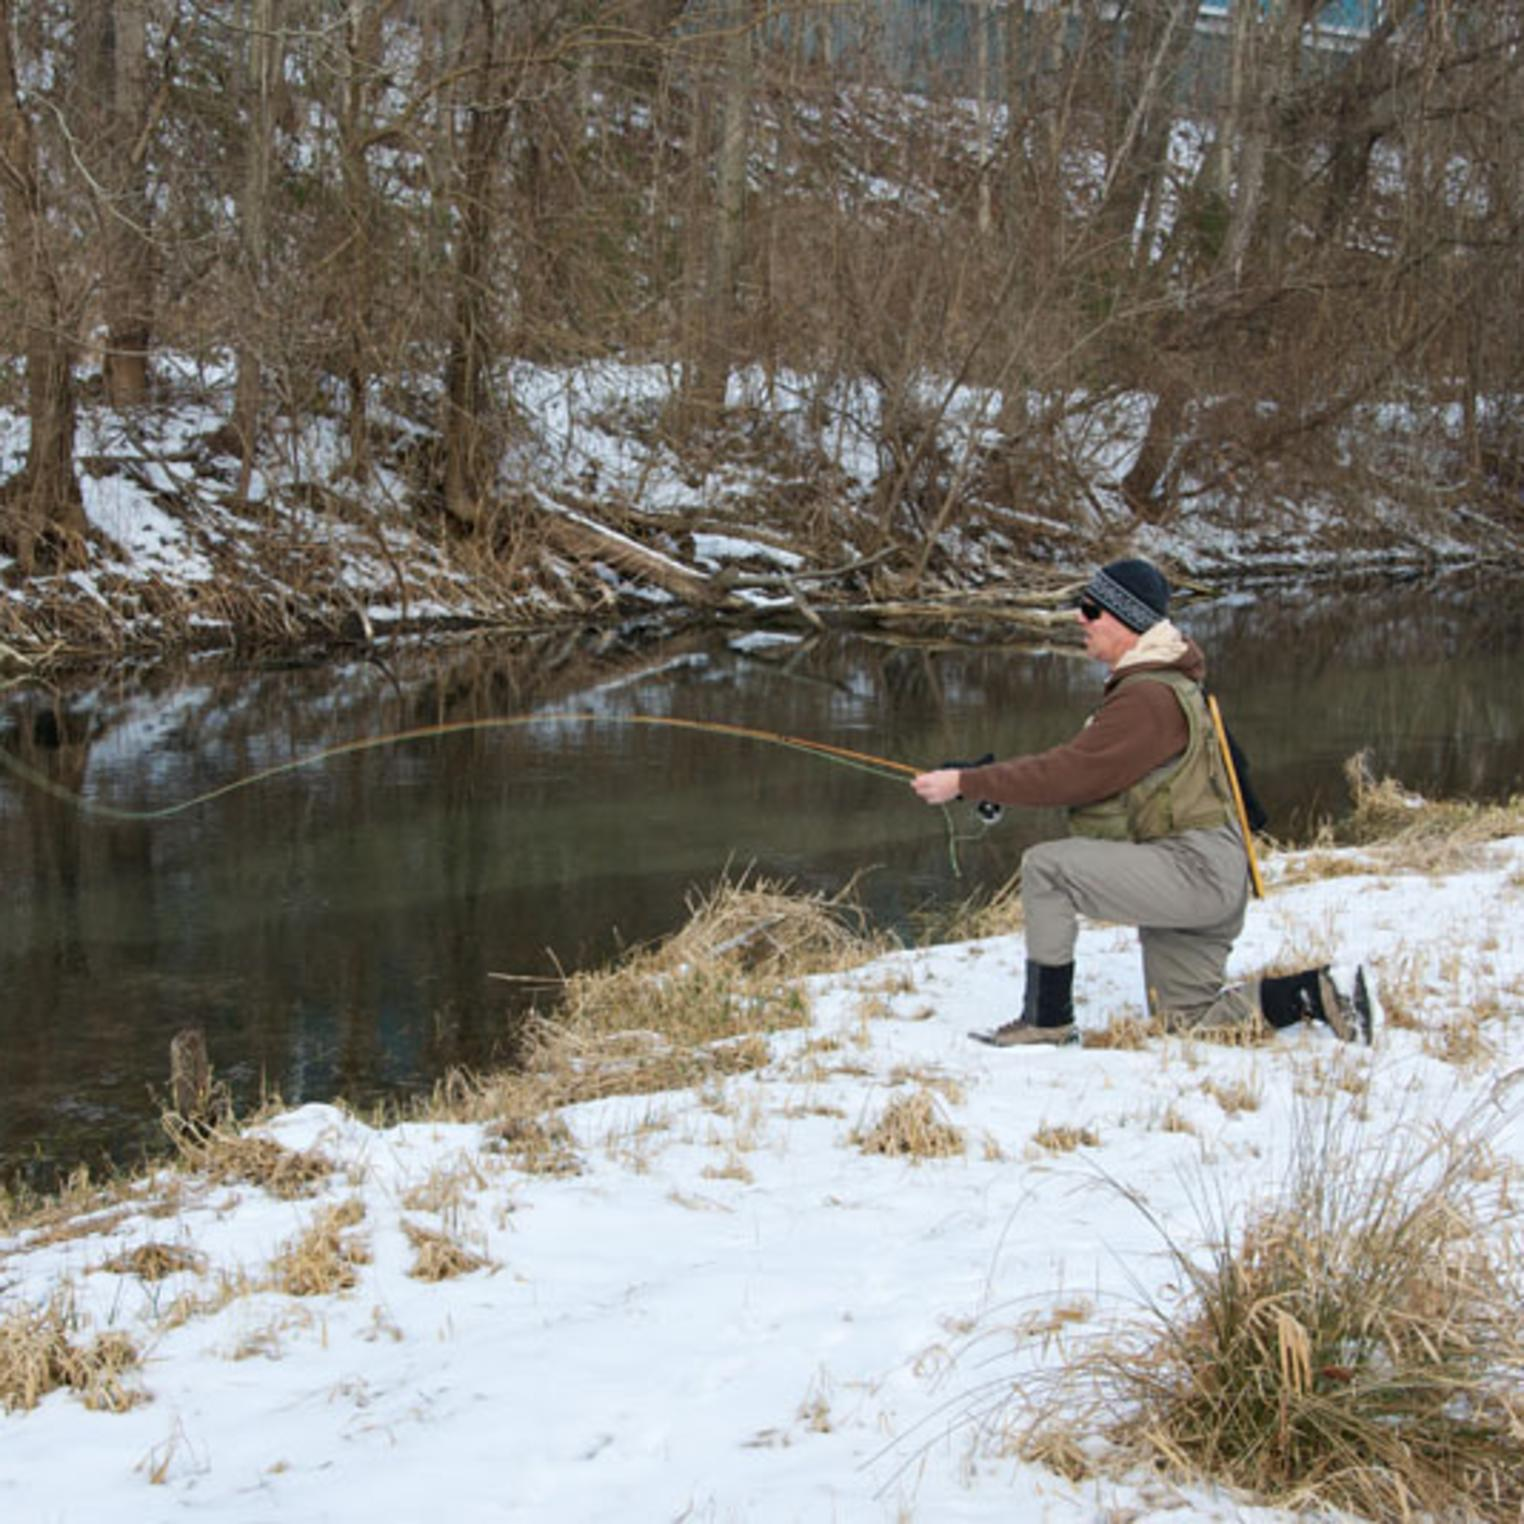 Fishing on LeTort Spring Run